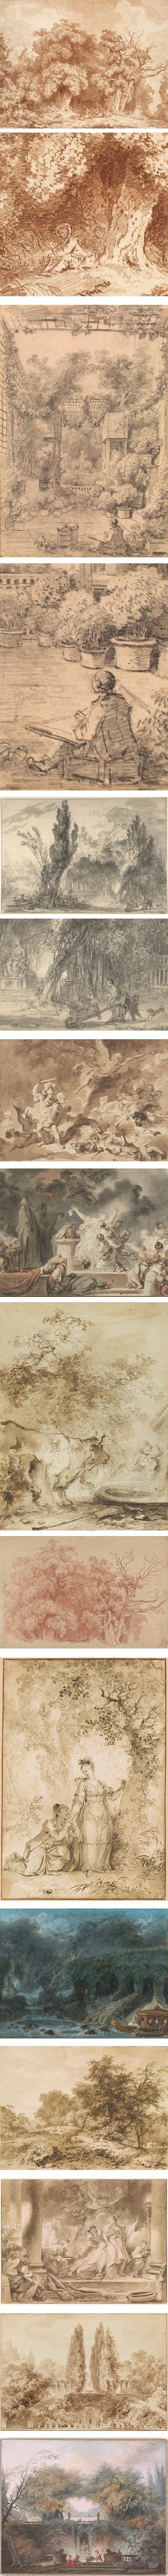 Jean-Honore Fragonard: Drawing Triumphant